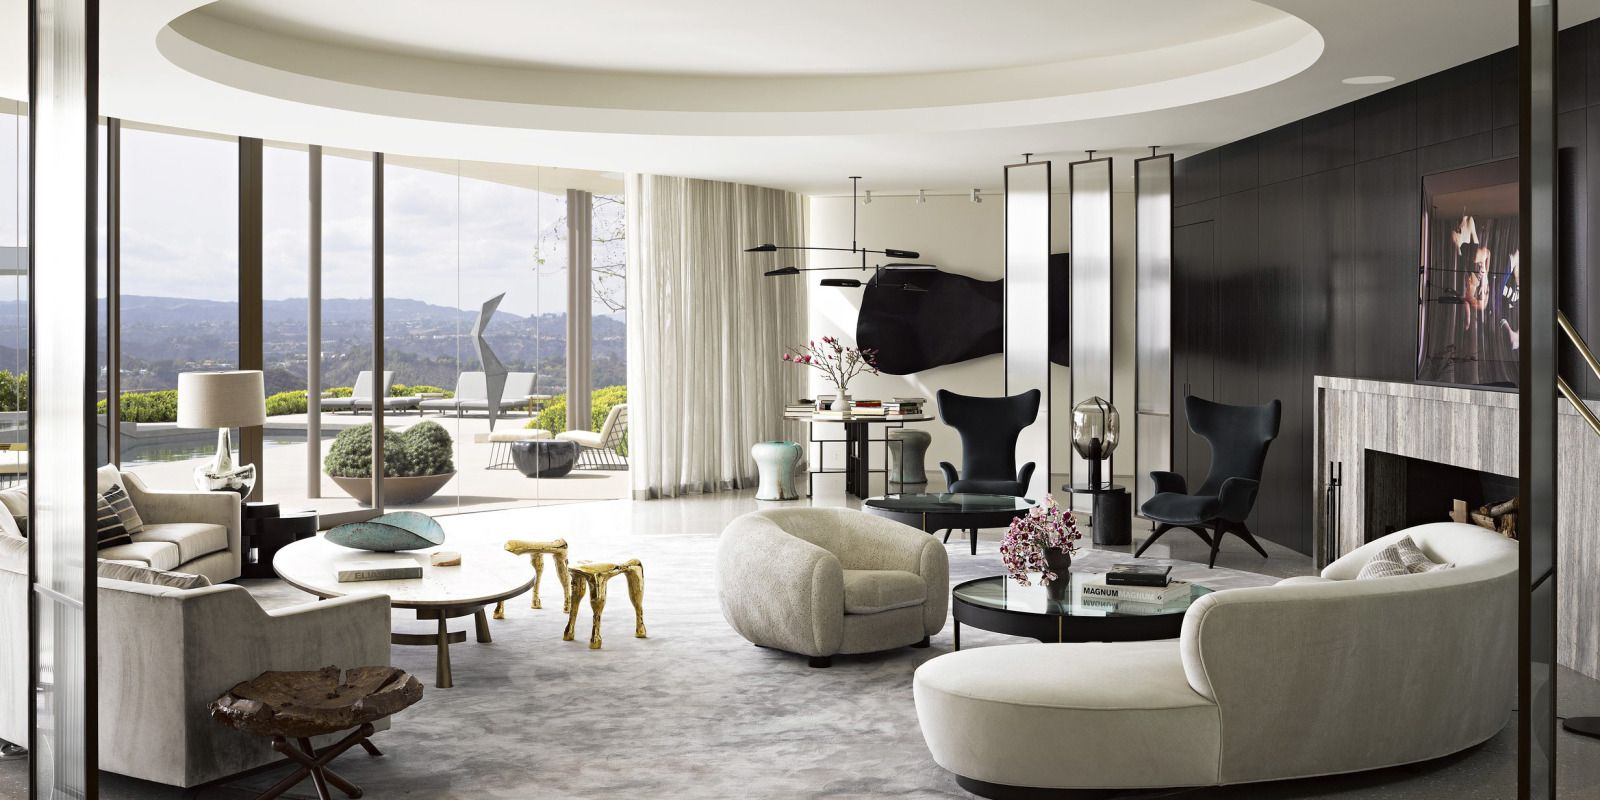 How Two Hollywood Power Players Modernized Their Midcentury La Home 1960s Style House And